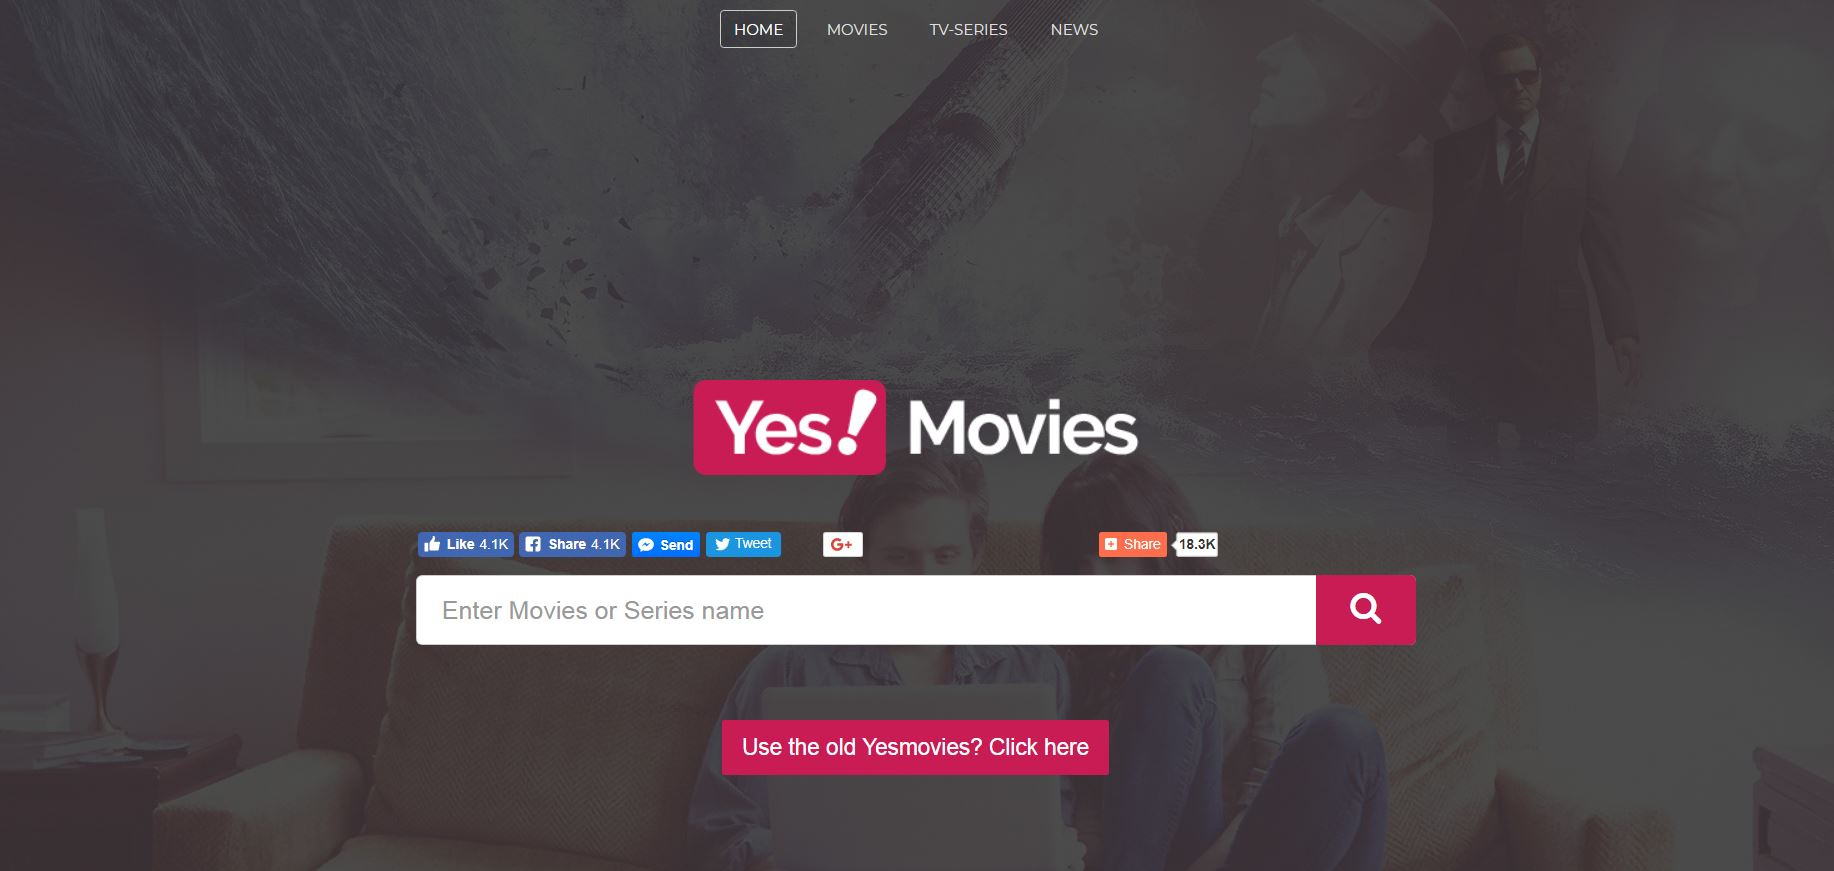 Yes movies streaming website